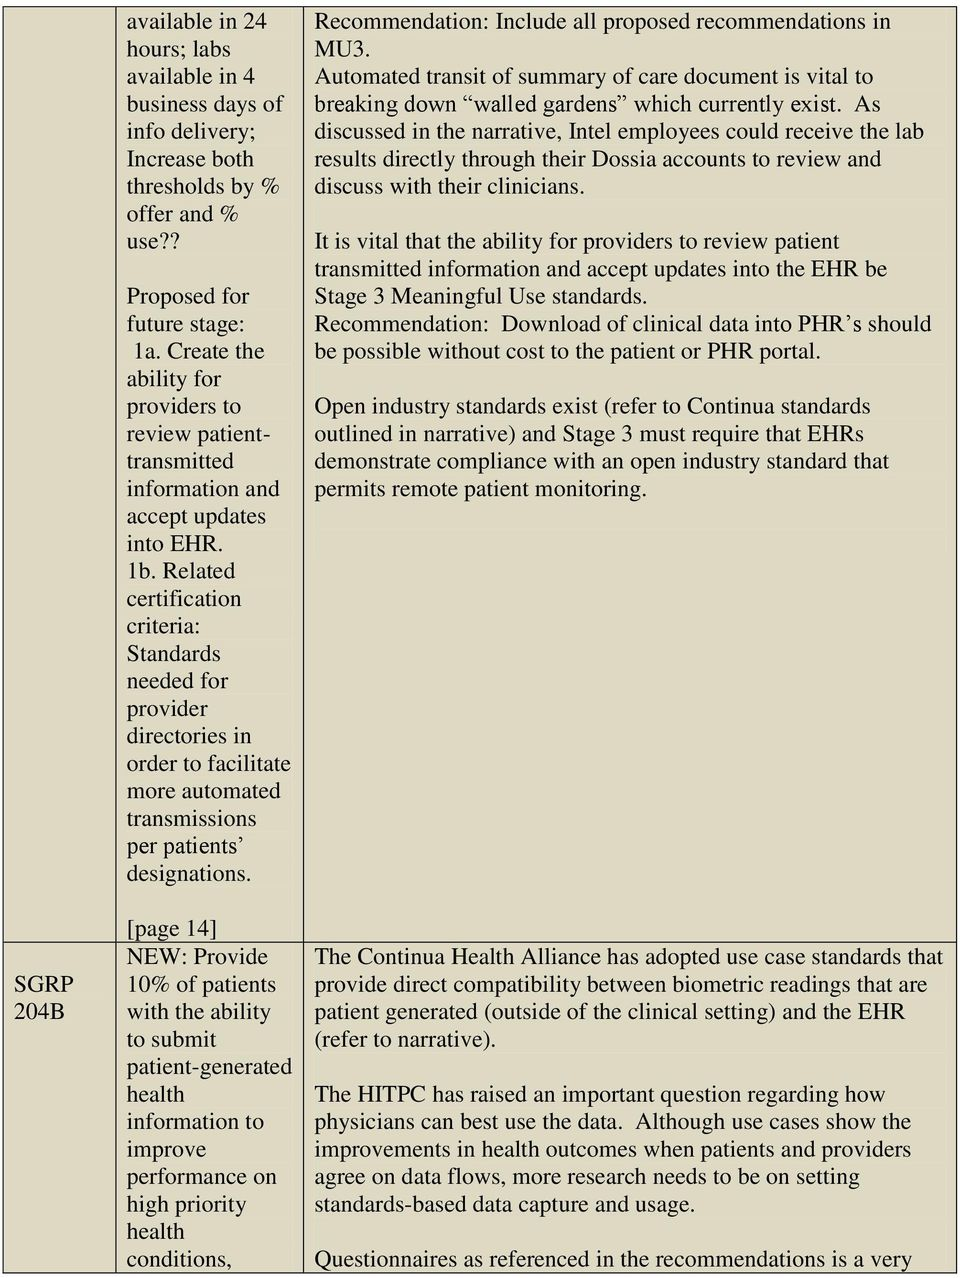 Related certification criteria: Standards needed for provider directories in order to facilitate more automated transmissions per patients designations.